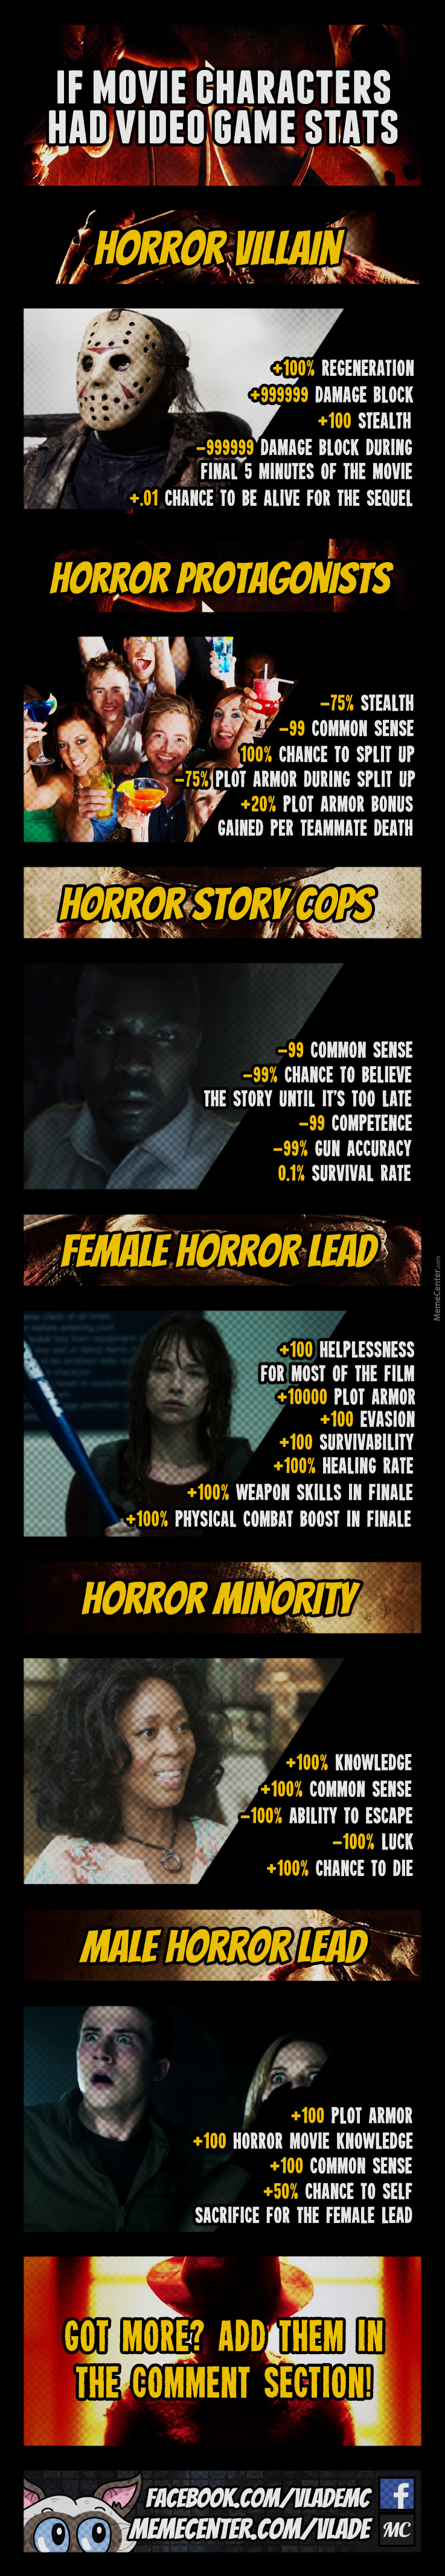 If Movie Characters Had Video Game Stats